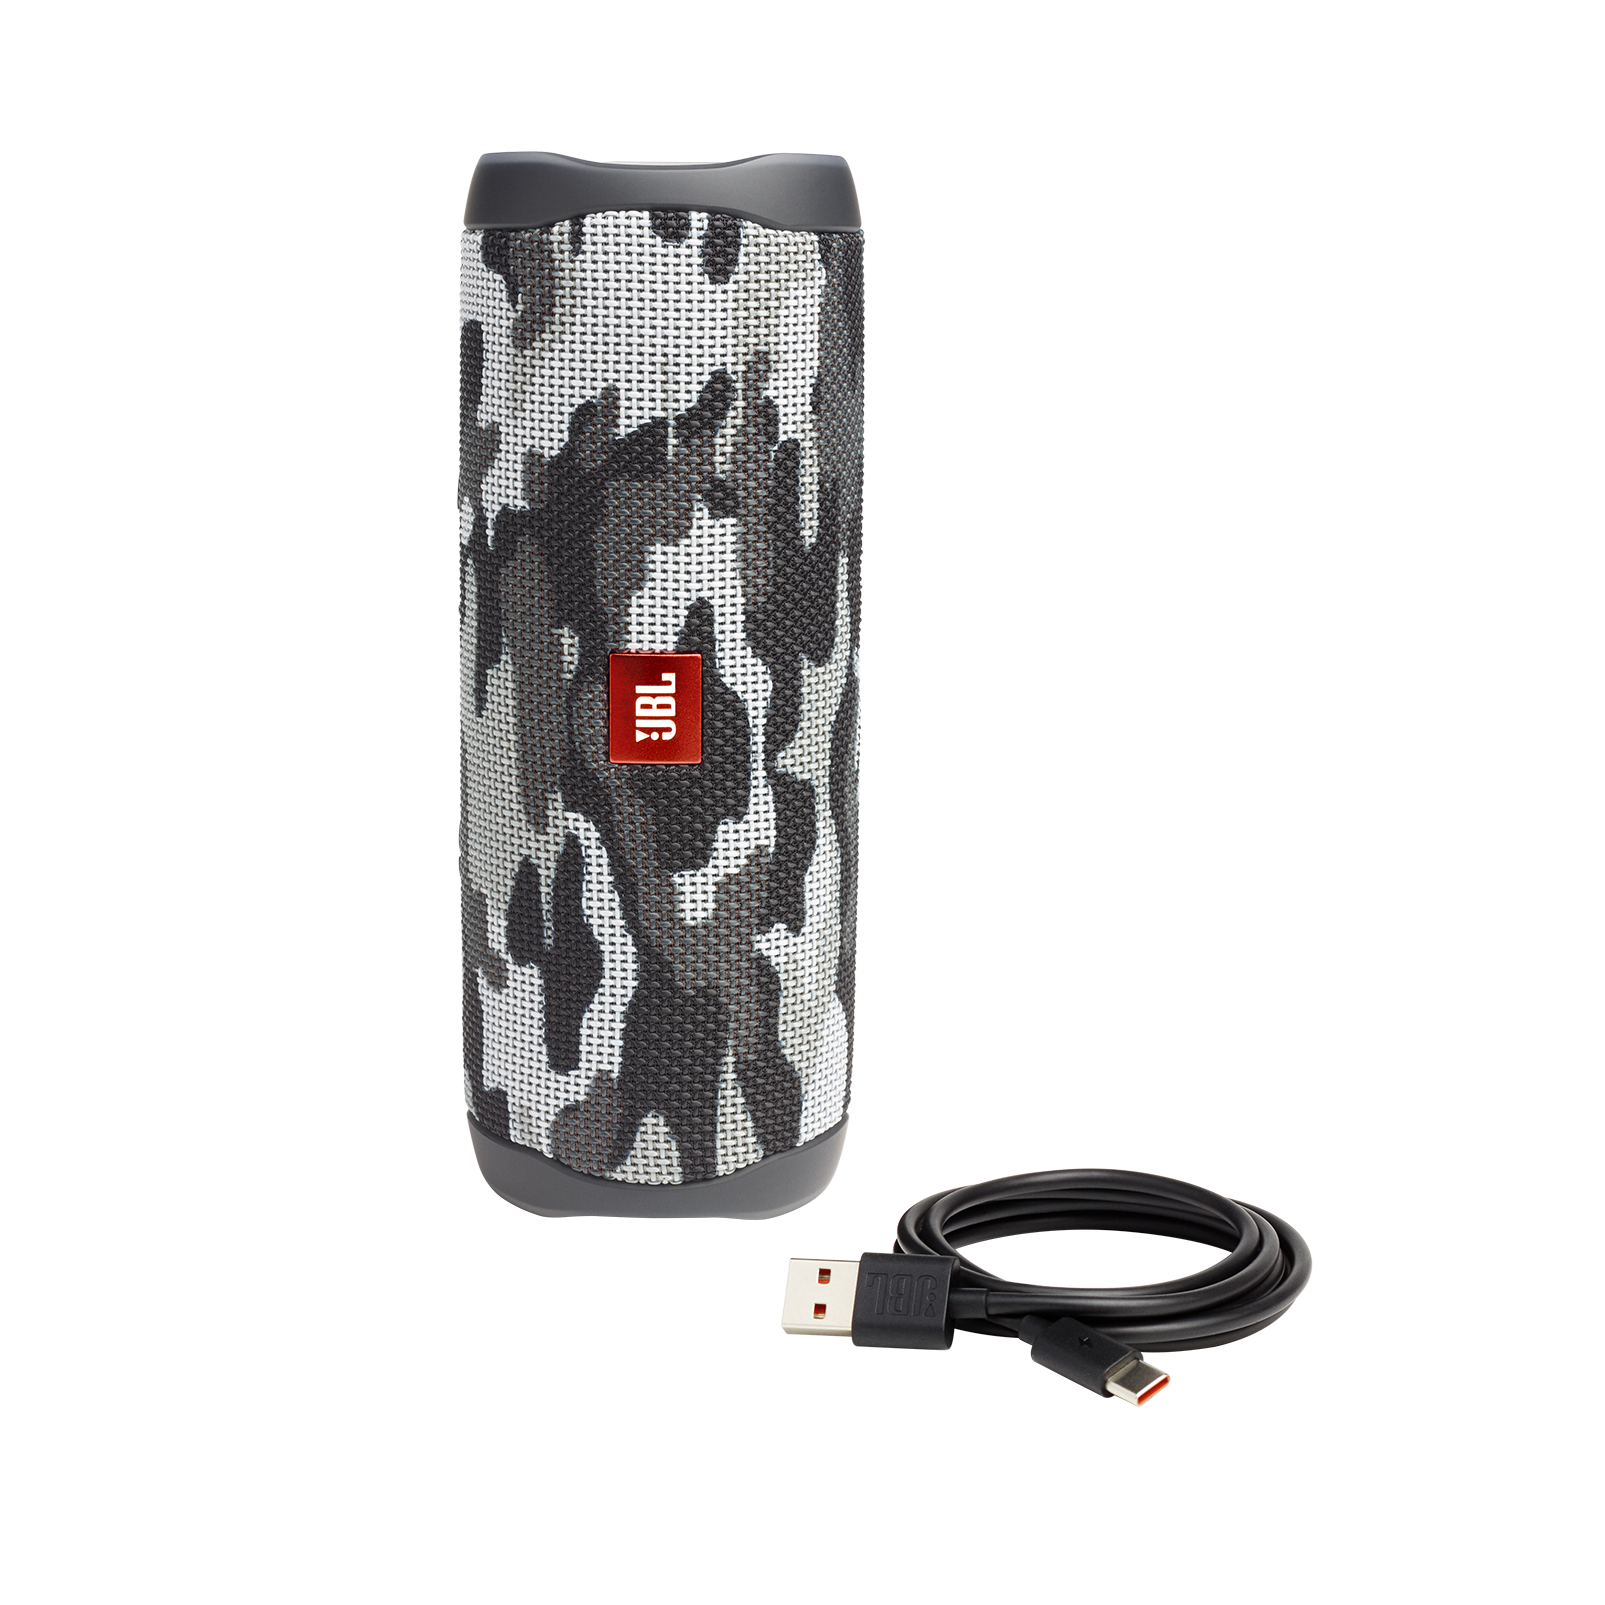 JBL FLIP 5 - Black Camo - Portable Waterproof Speaker - Detailshot 1